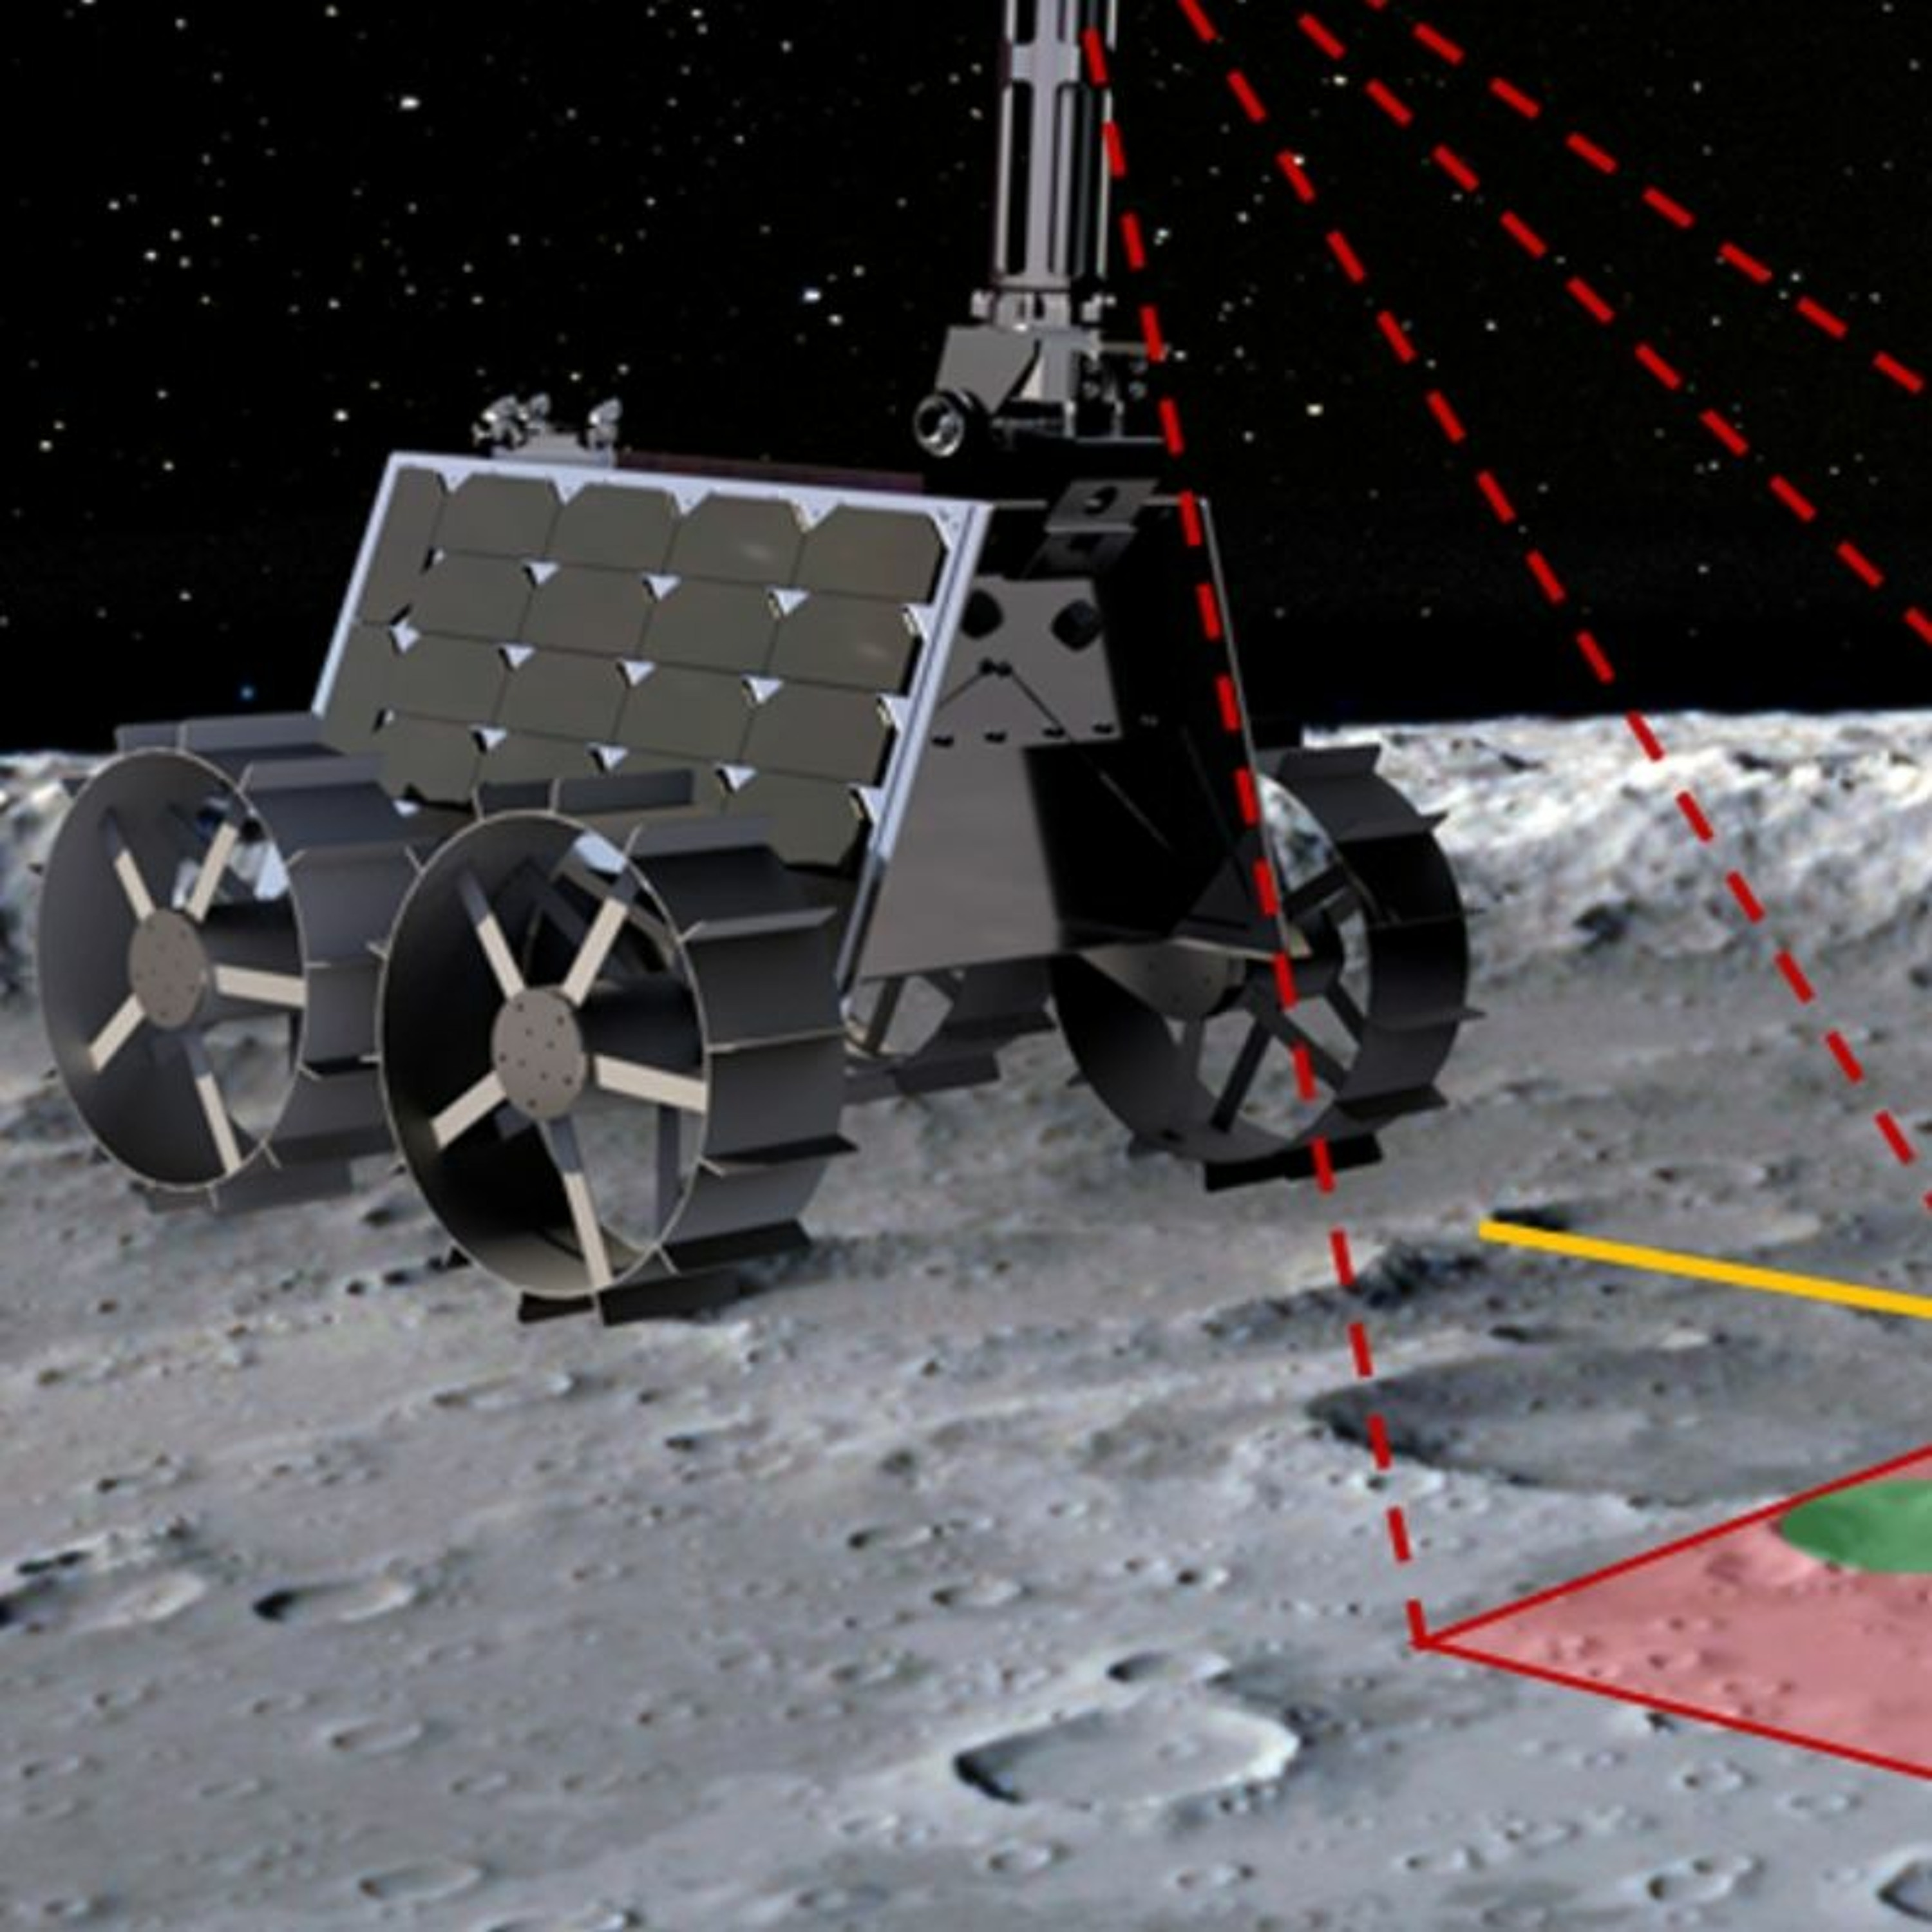 Mission Control's Ewan Reid on Going to the Moon